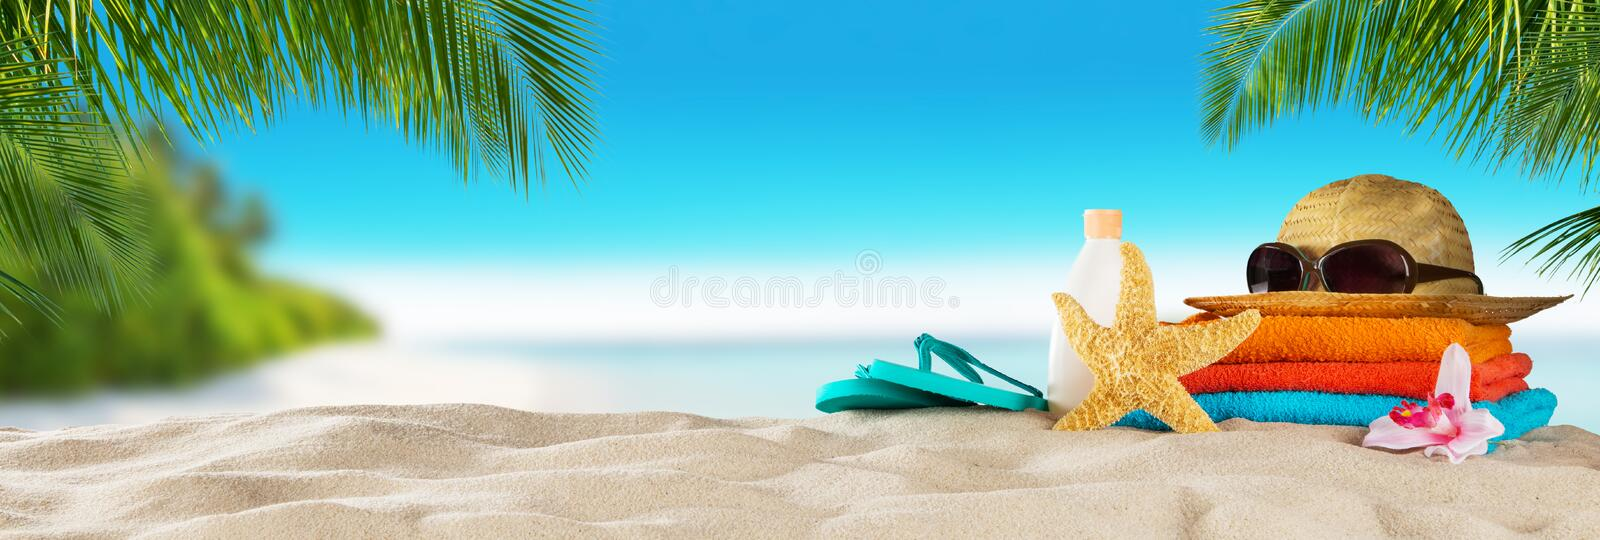 Tropical beach with accessories on sand, summer holiday background. stock photography